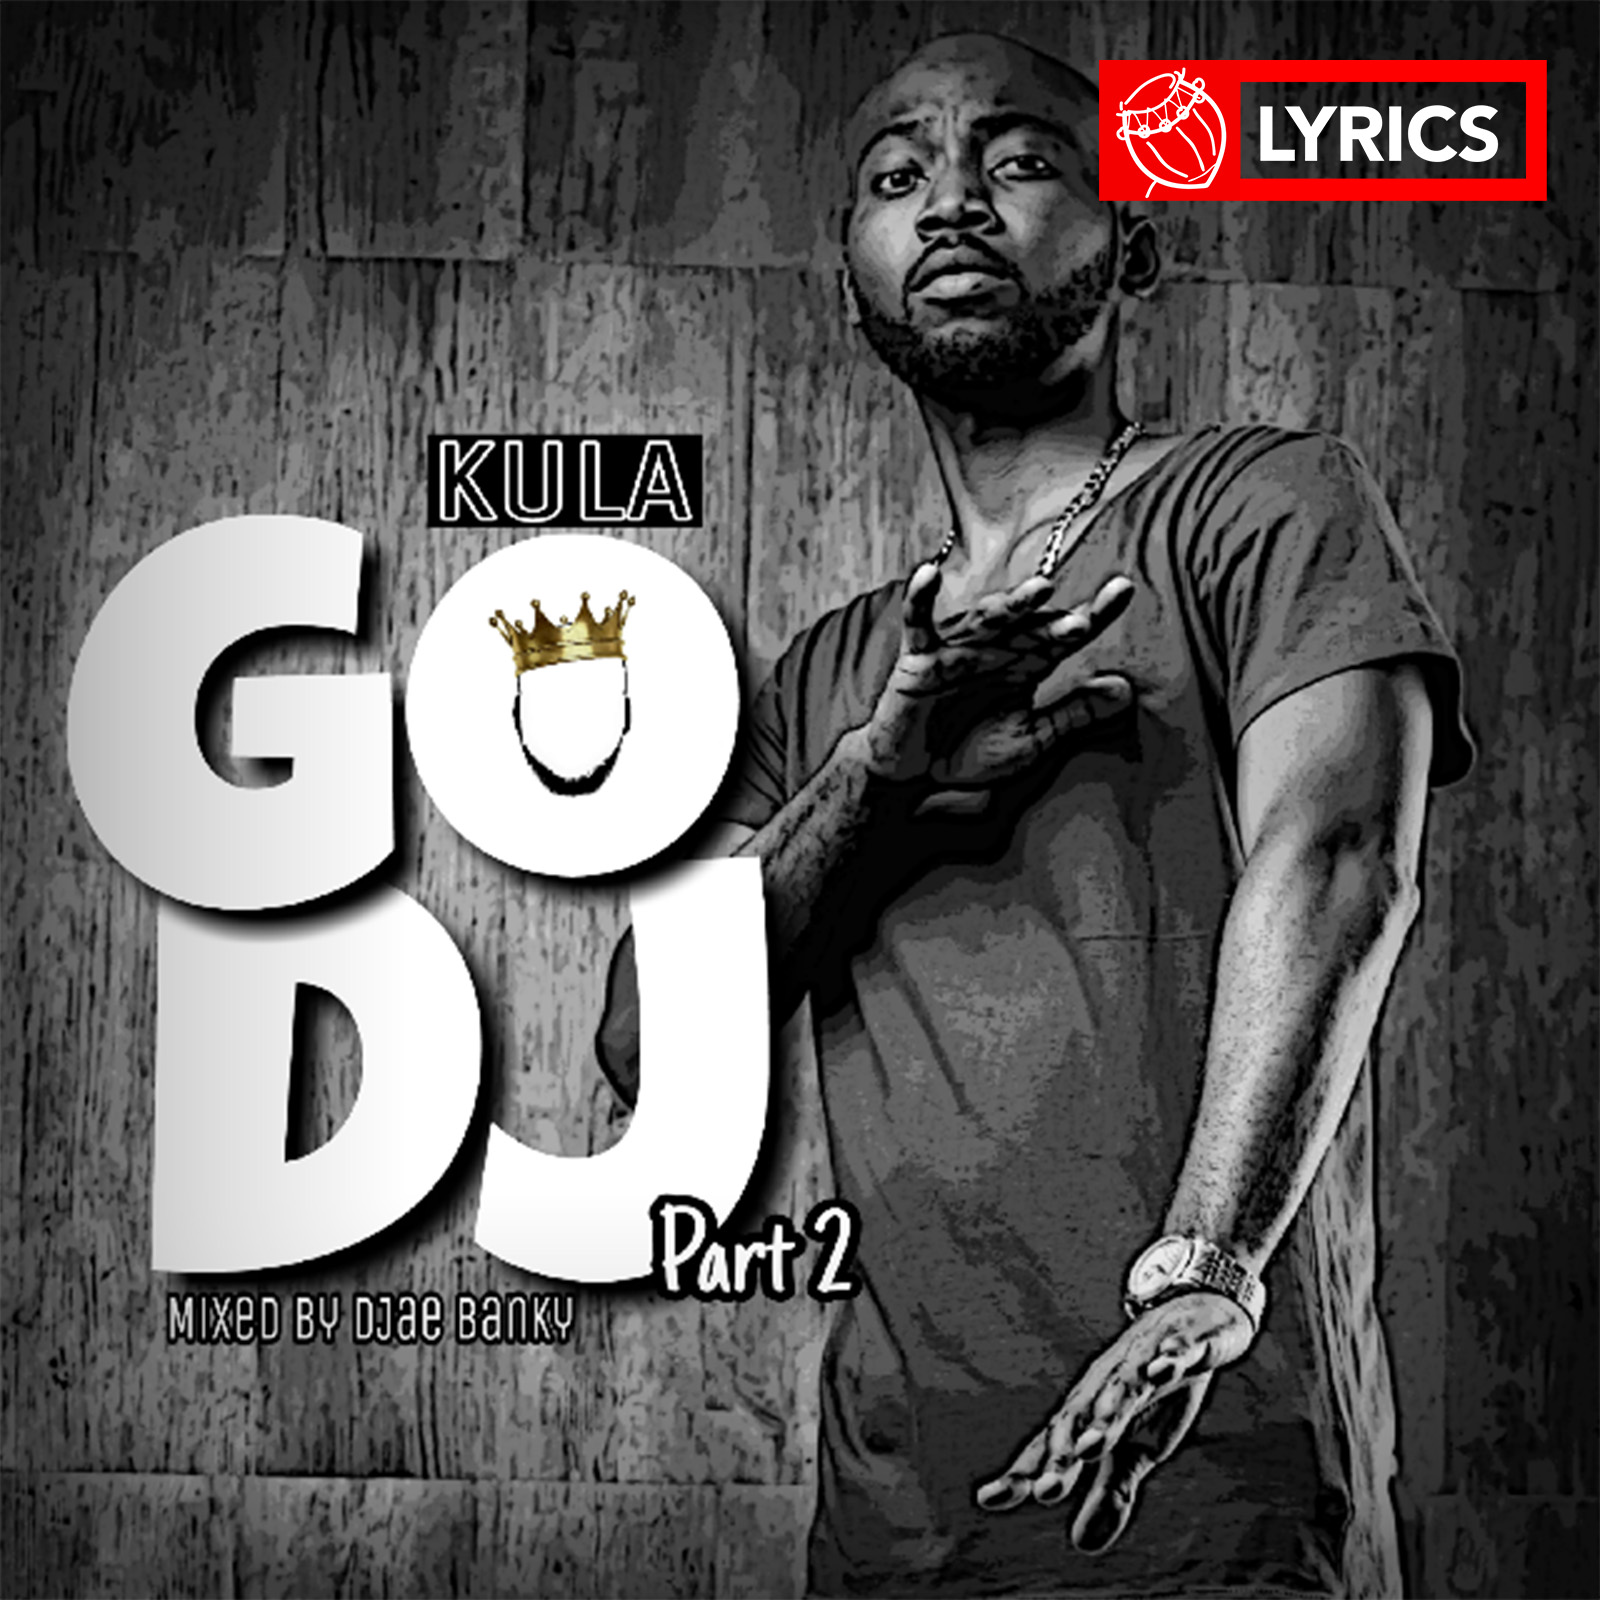 Lyrics: Go DJ part2 by Kula